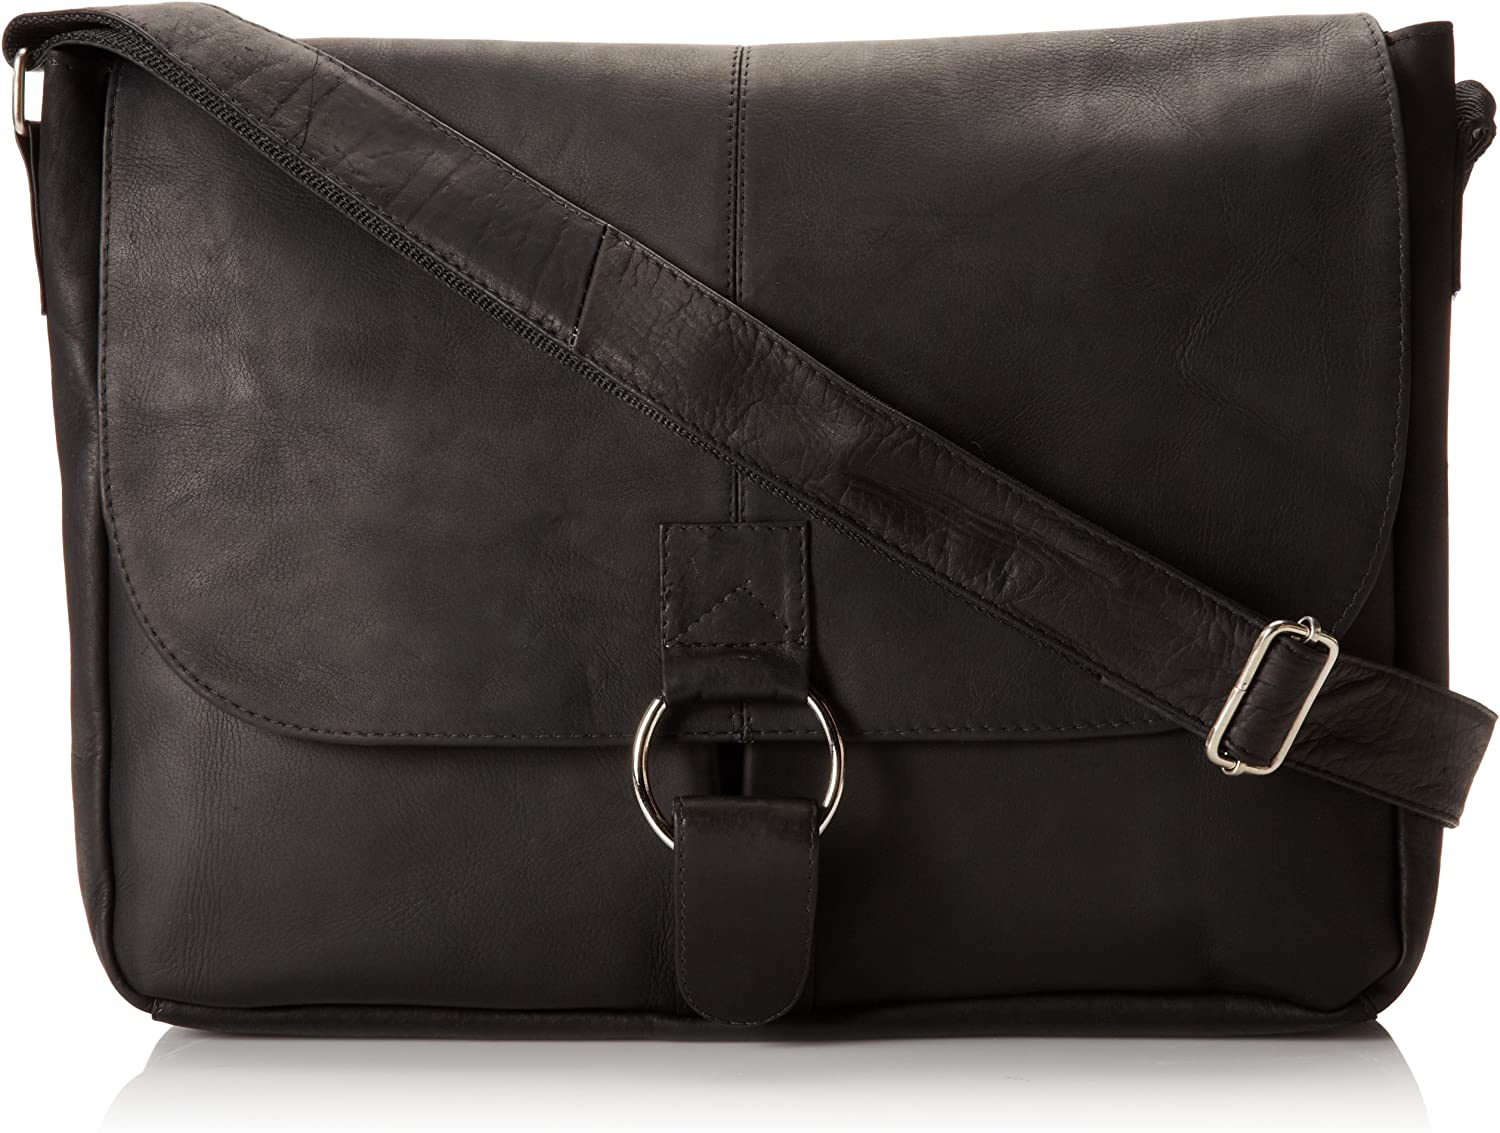 David King Co. Messenger Bag Plus 3, Black, One Size